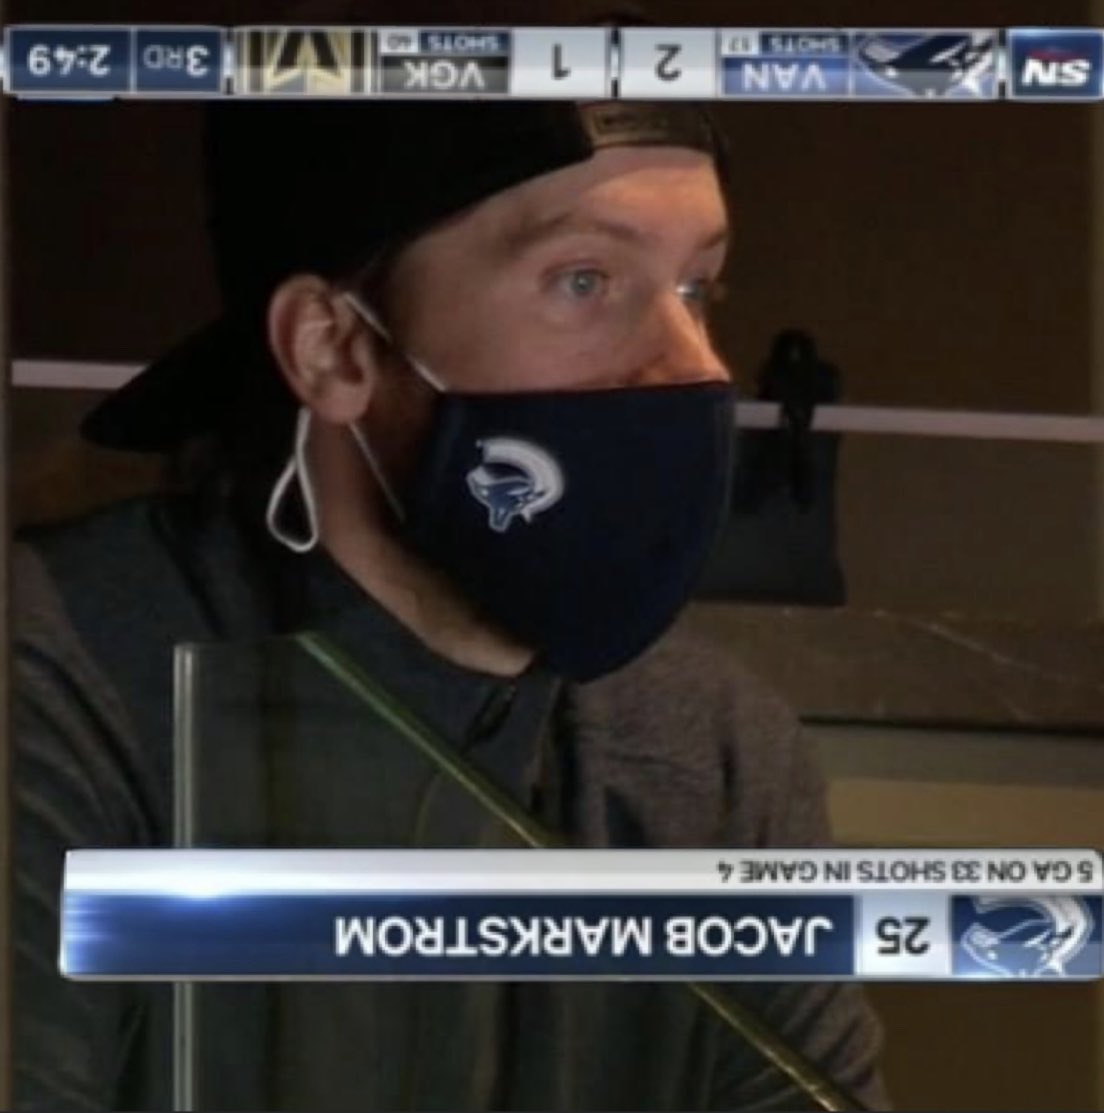 𝗖𝗵𝗿𝗶𝘀 Faber On Twitter I Fixed The Upside Down Mask Problem For You J Markstrom